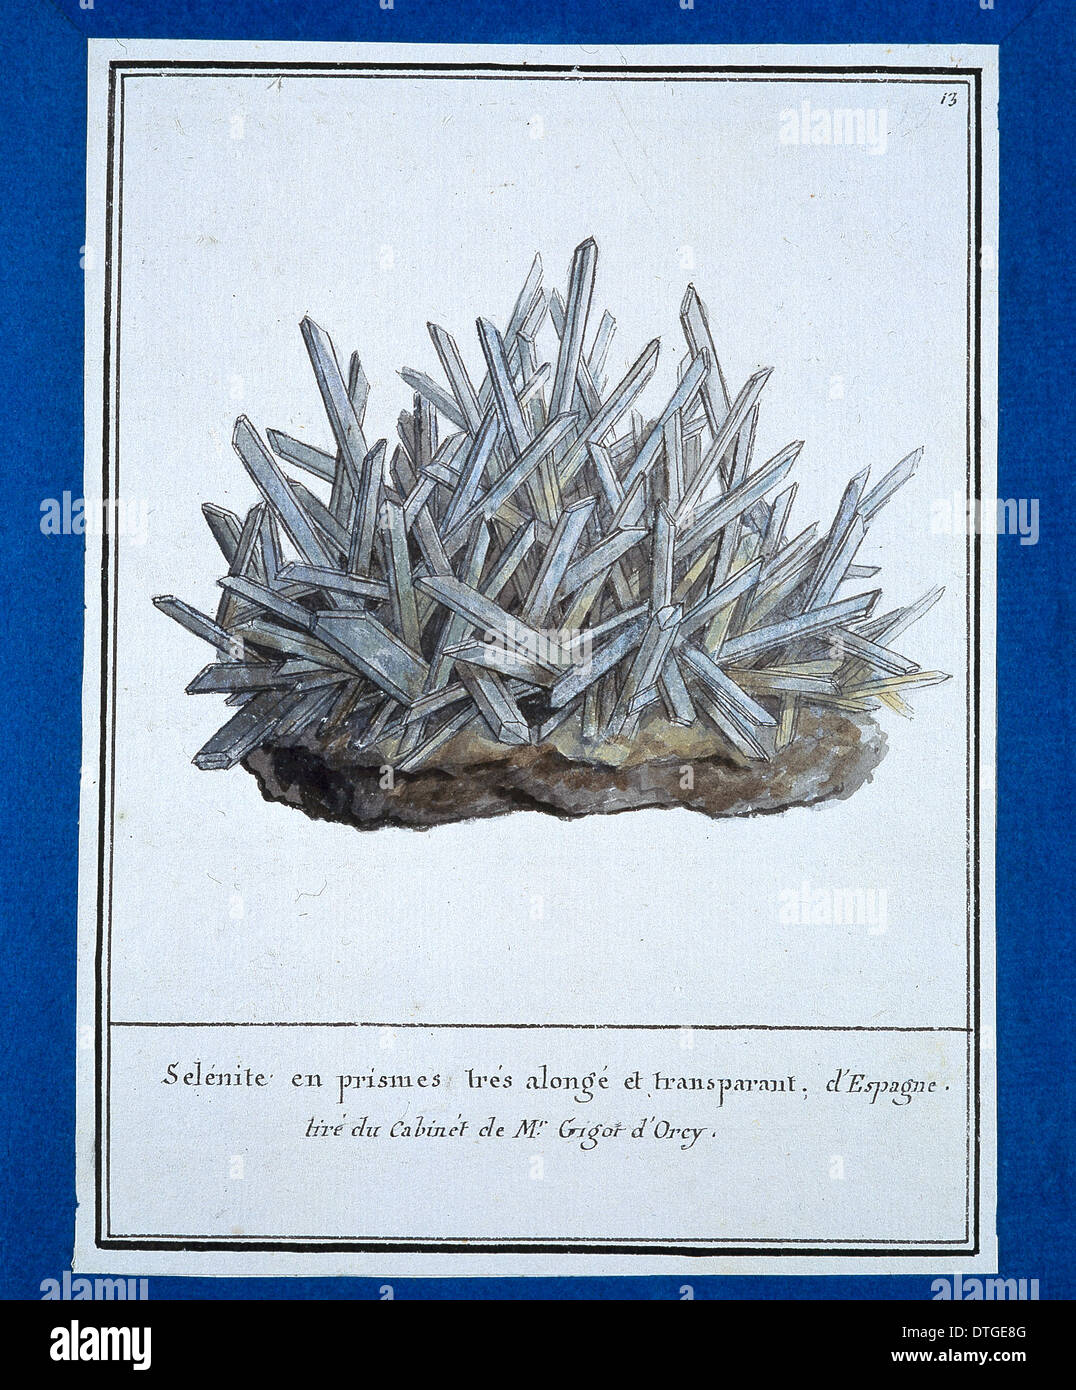 Plate 13 from Mineralogie Volume 1 (1790) by Swebach Desfontaines - Stock Image